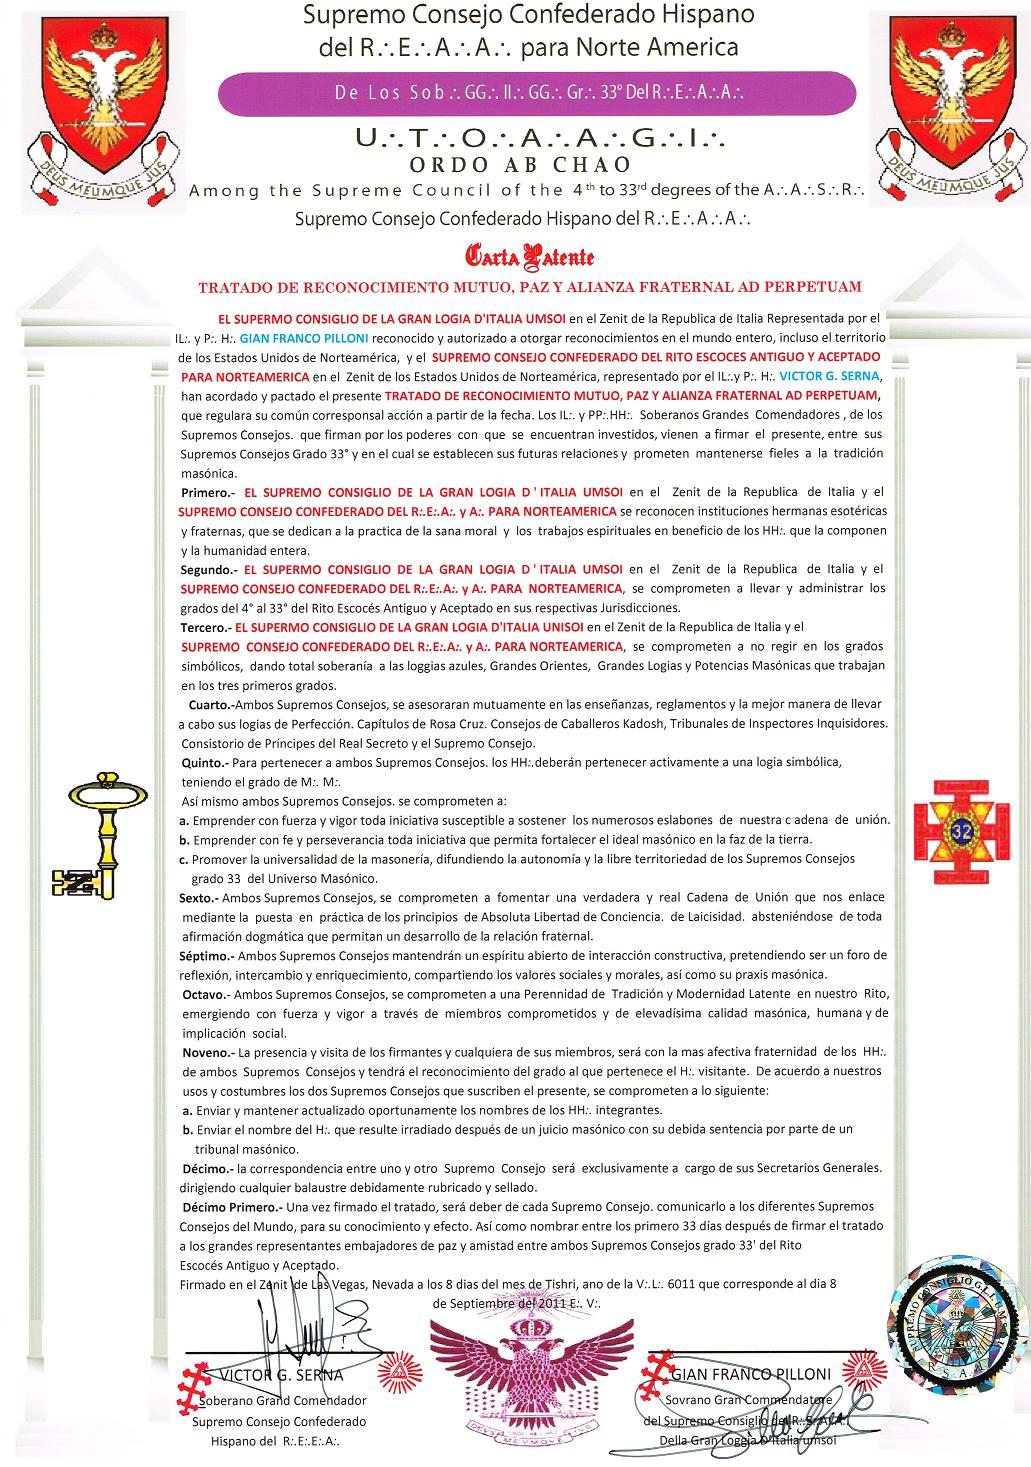 carta_patente